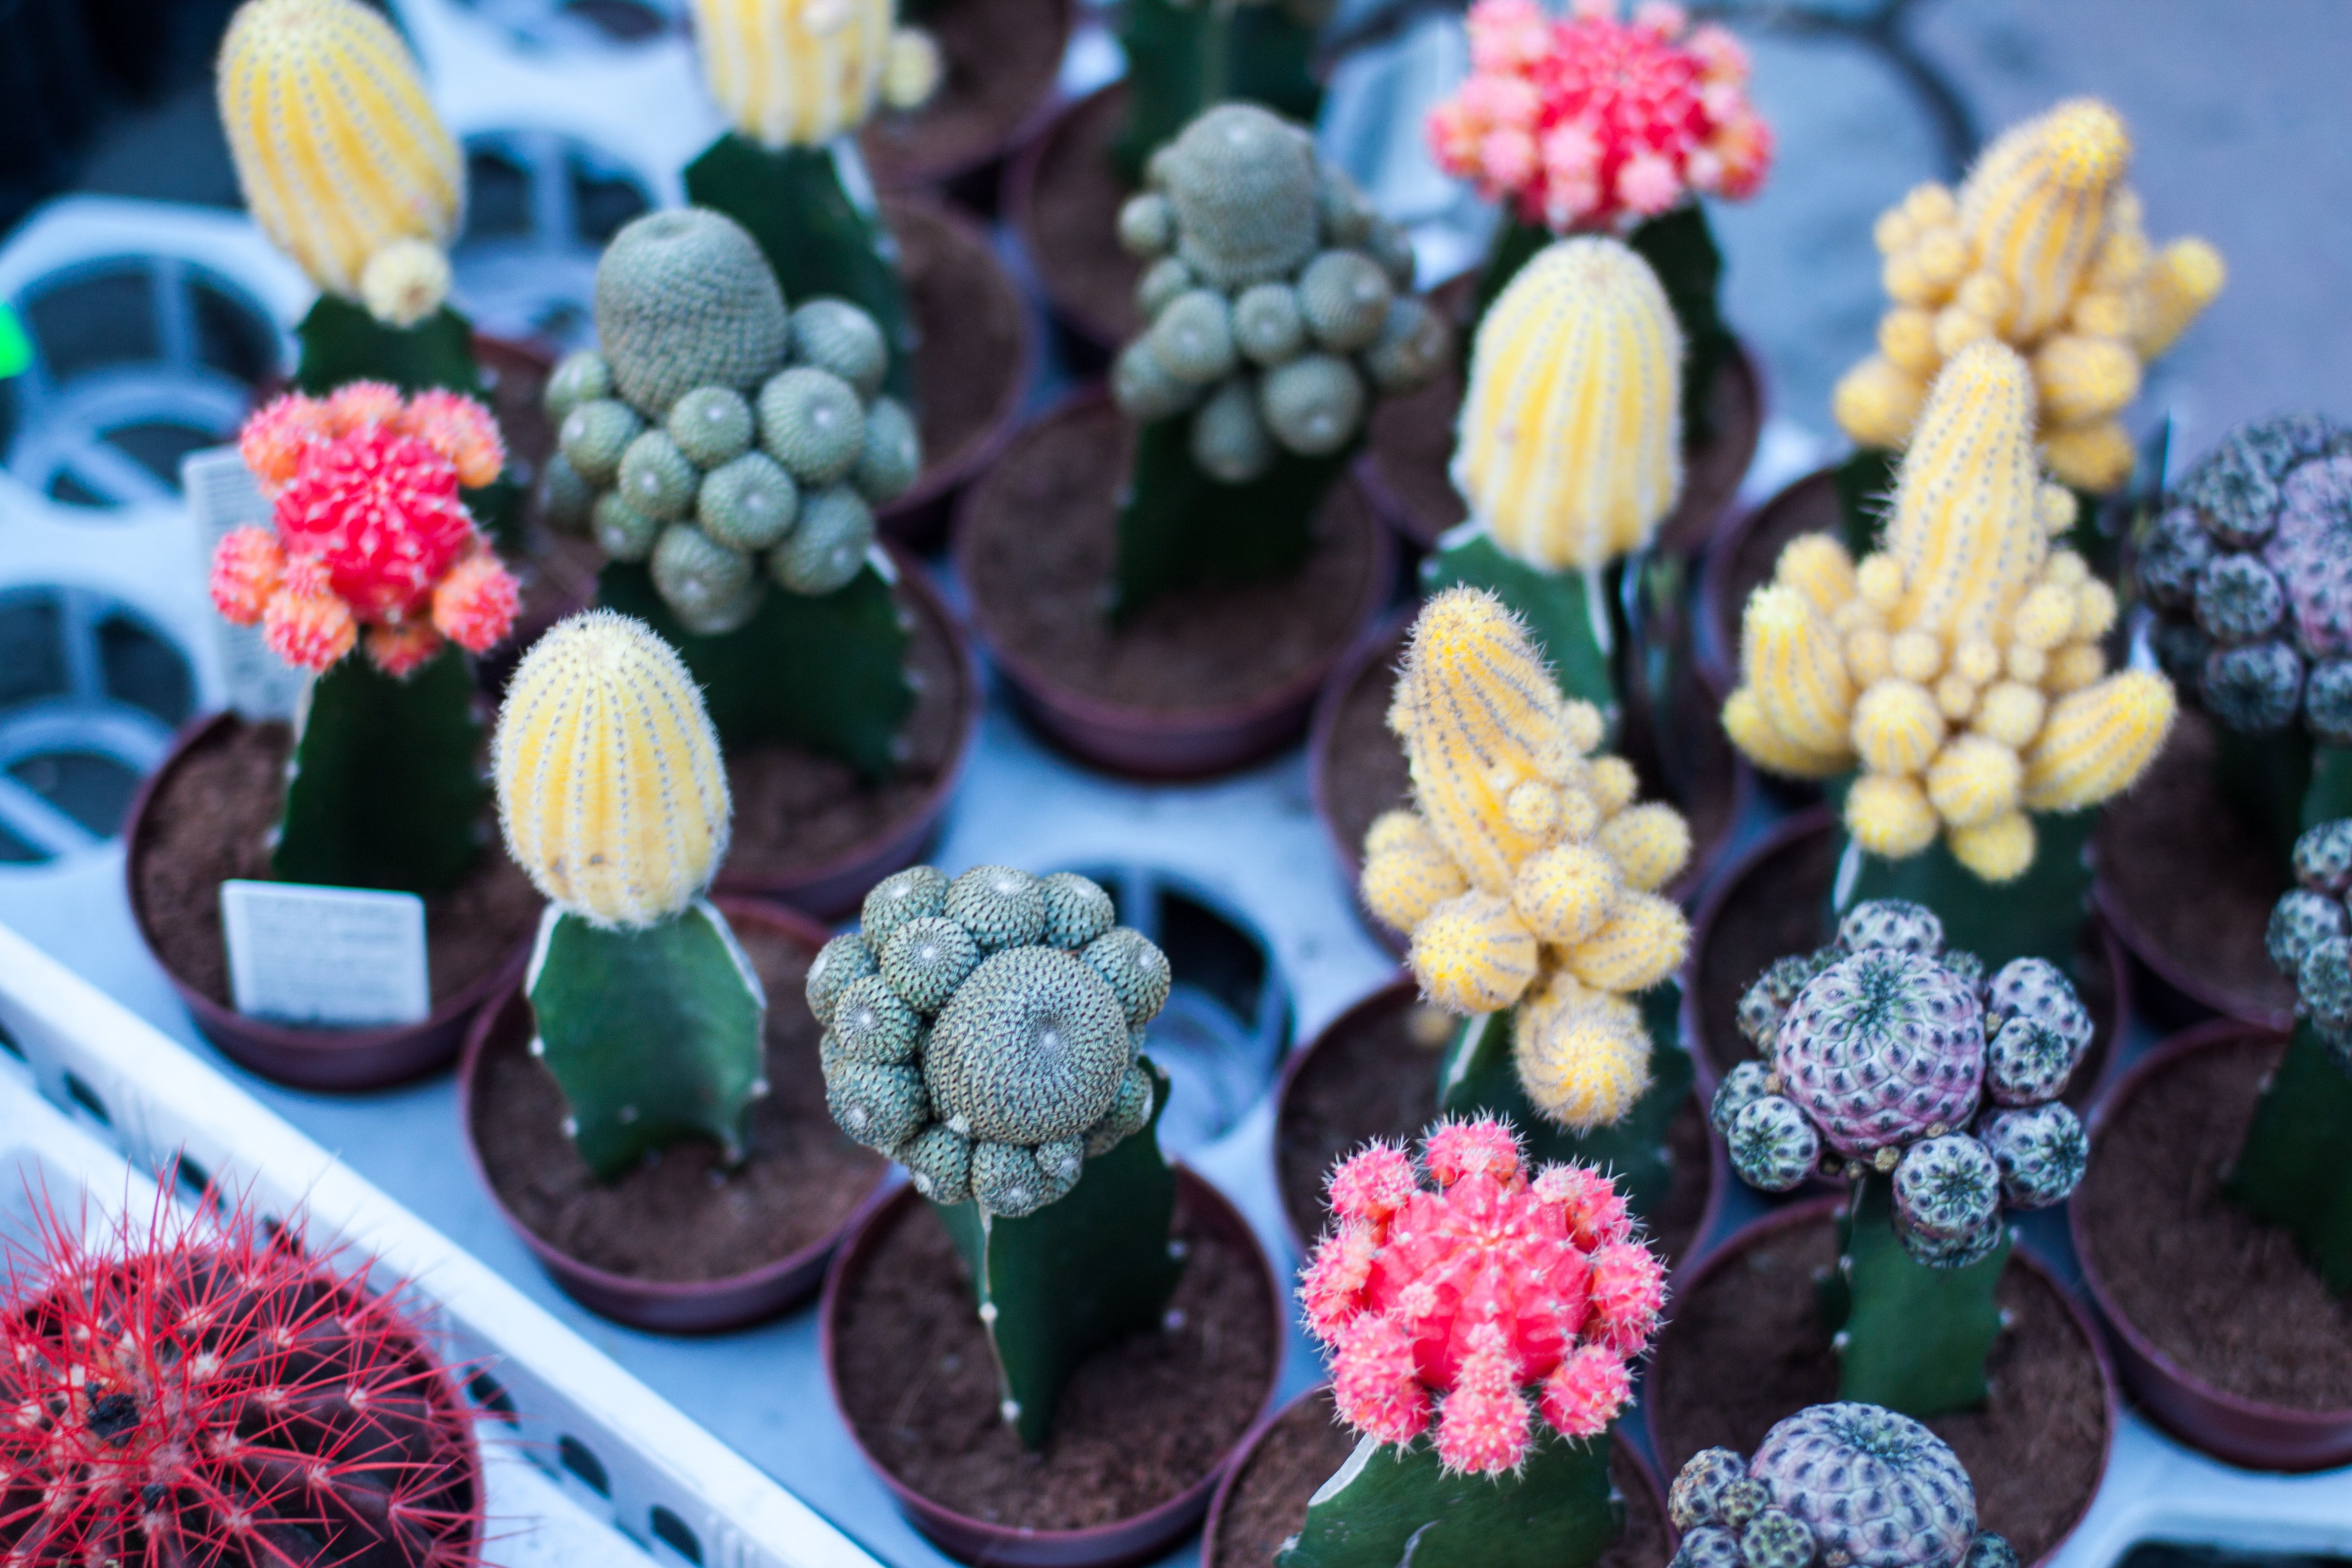 variety of flowering cacti